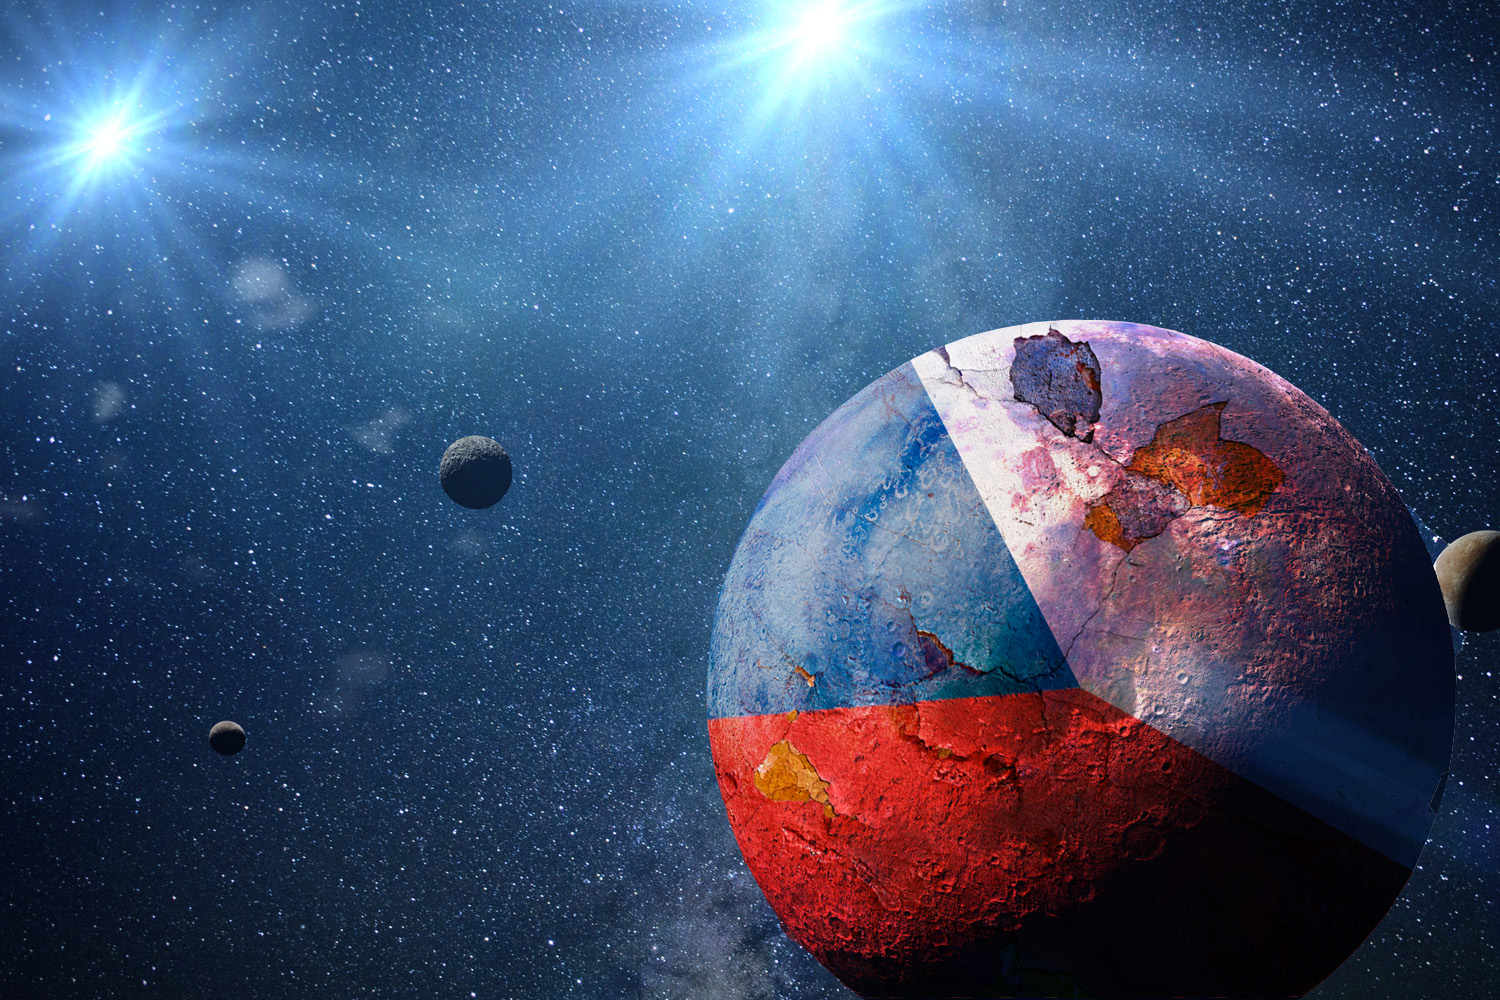 The Czech Republic will get to name a new planet, but it can't be Havel or Jagr